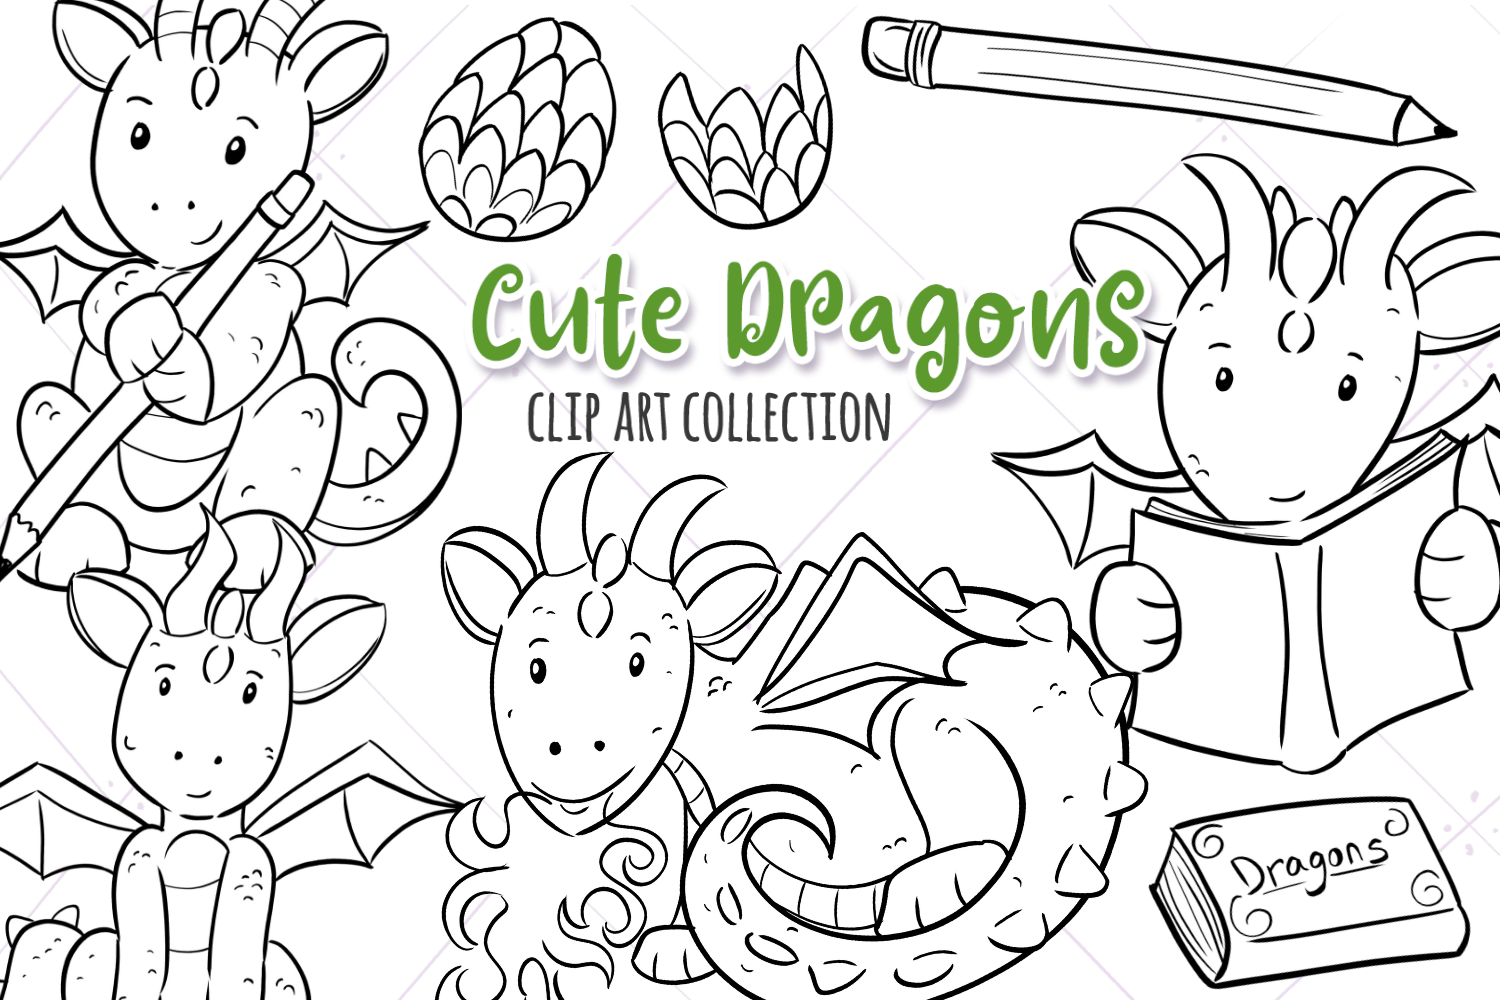 Cute Dragons Digital Stamps example image 1